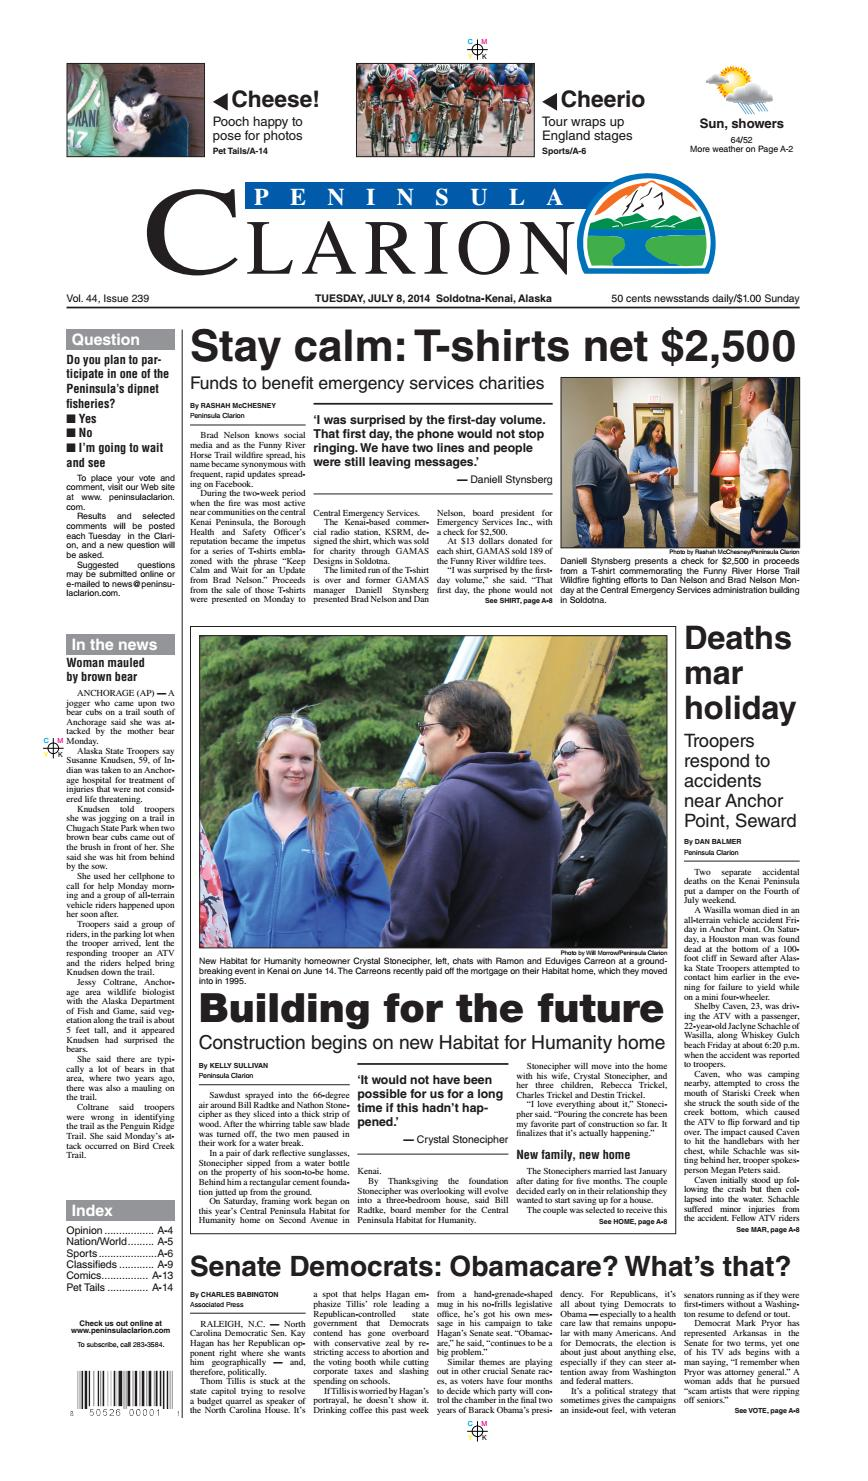 mpls office workers battle for best holiday cubicle.htm peninsula clarion  july 08  2014 by sound publishing issuu  peninsula clarion  july 08  2014 by